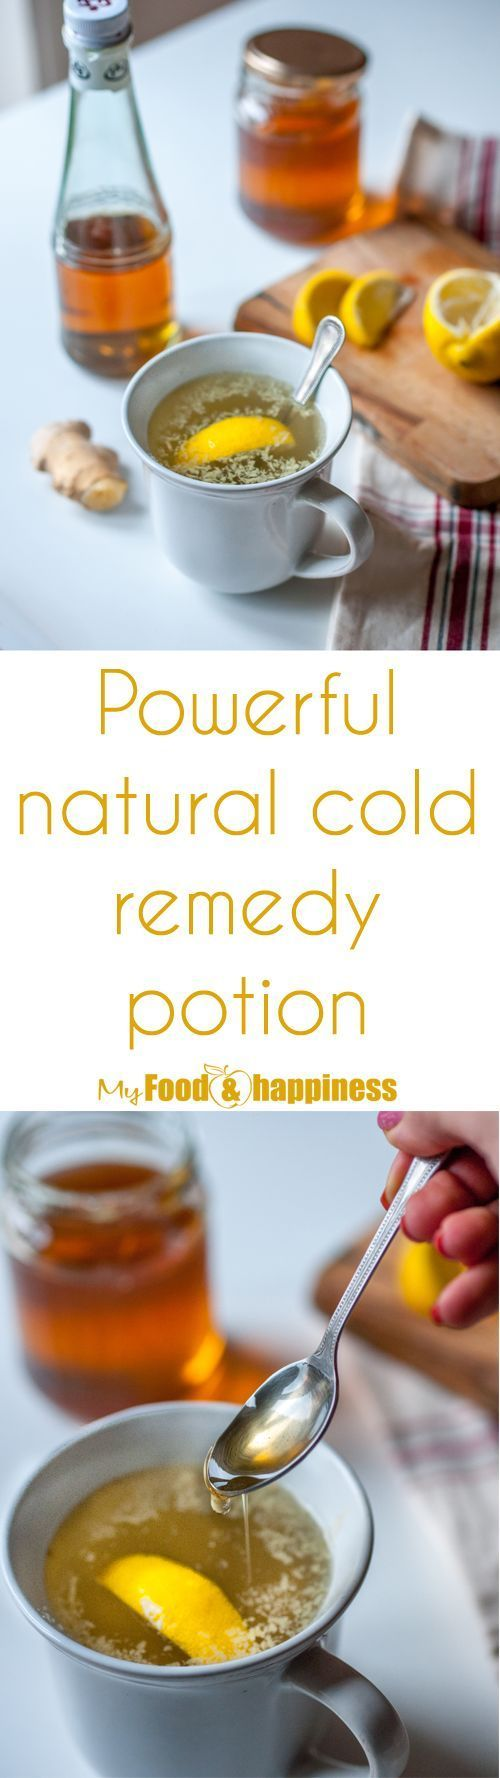 This healthy warm drink will help you in the cold winter months. Powerful natural cold remedy potion to relieve common cold symptoms such as runny nose, cough and sore throat. Made with some super nutritious ingredients like Apple cider vinegar & ginger.